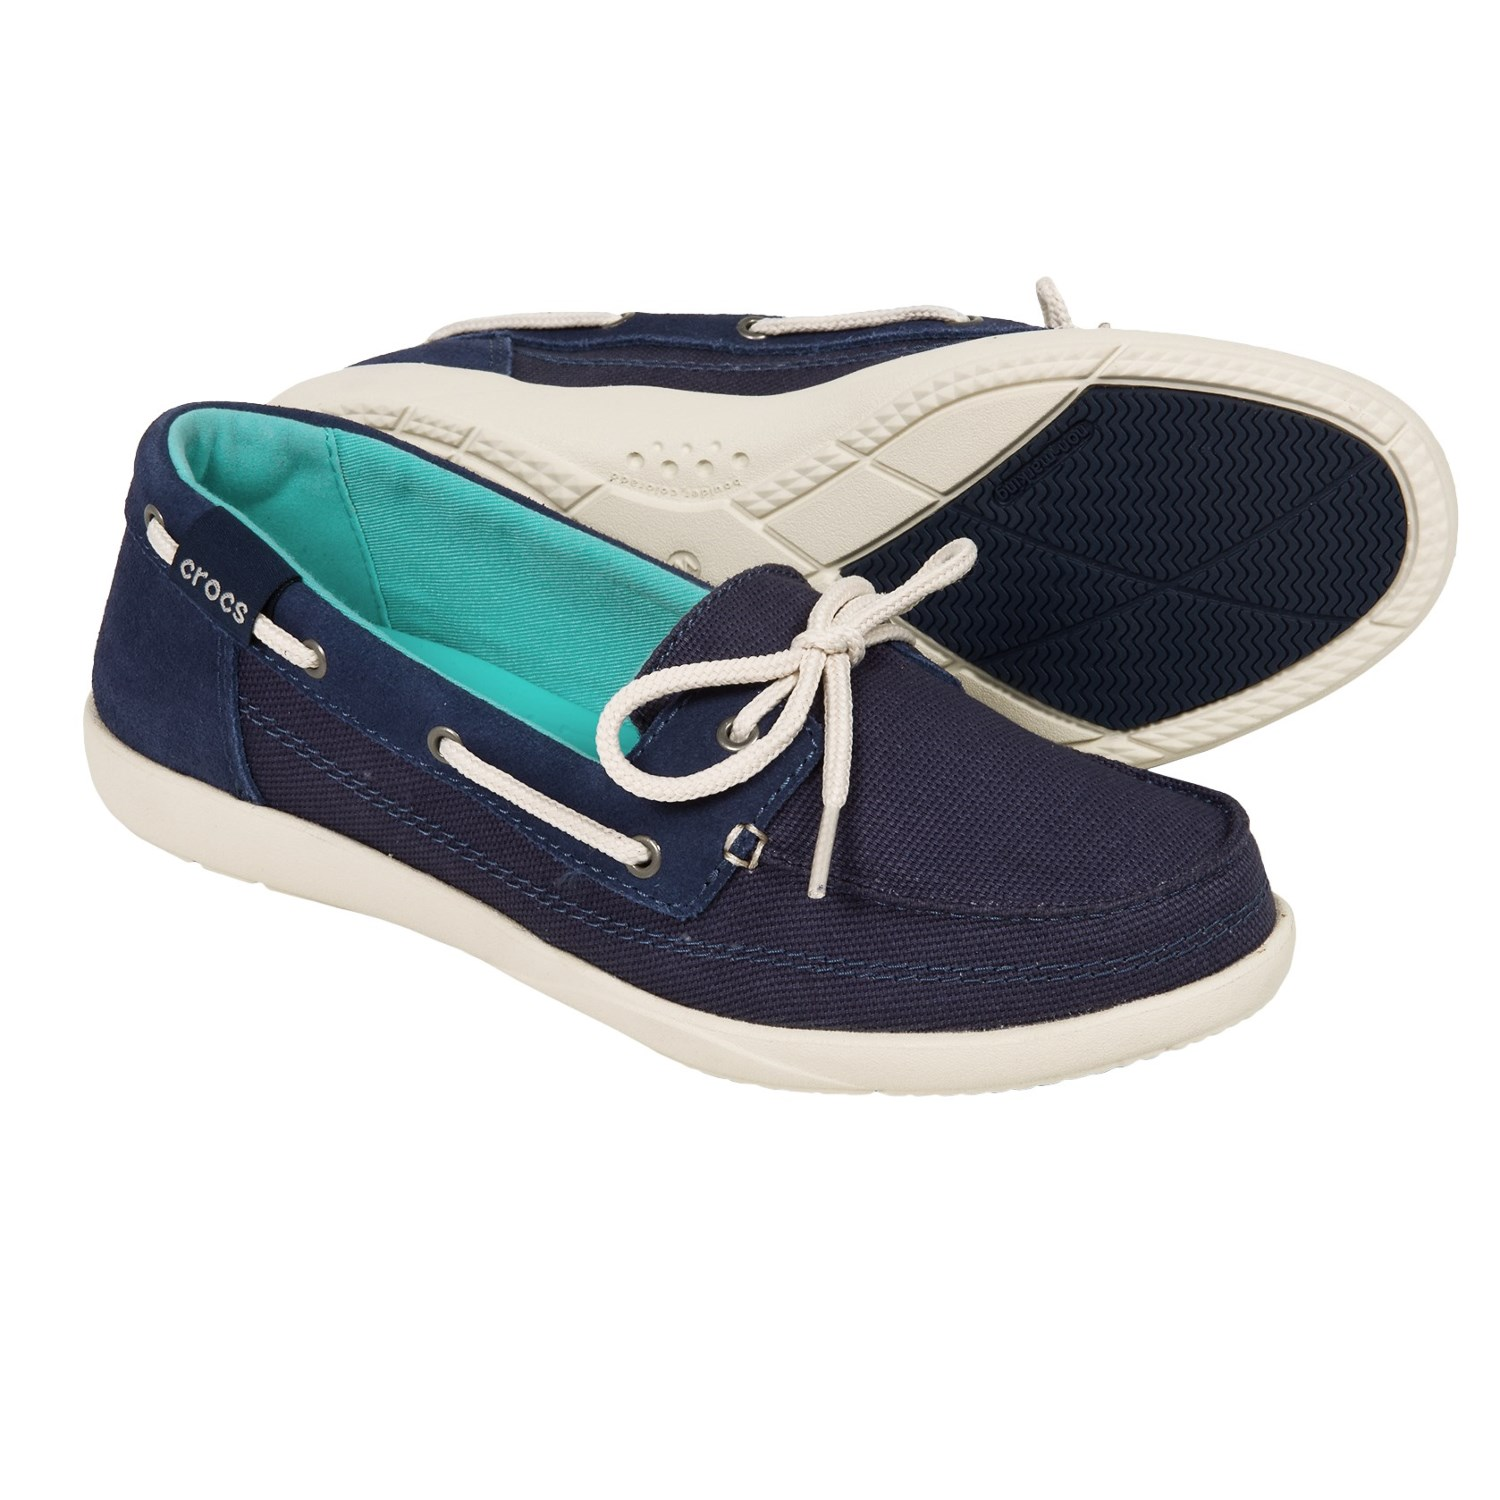 crocs walu canvas boat shoes for save 46